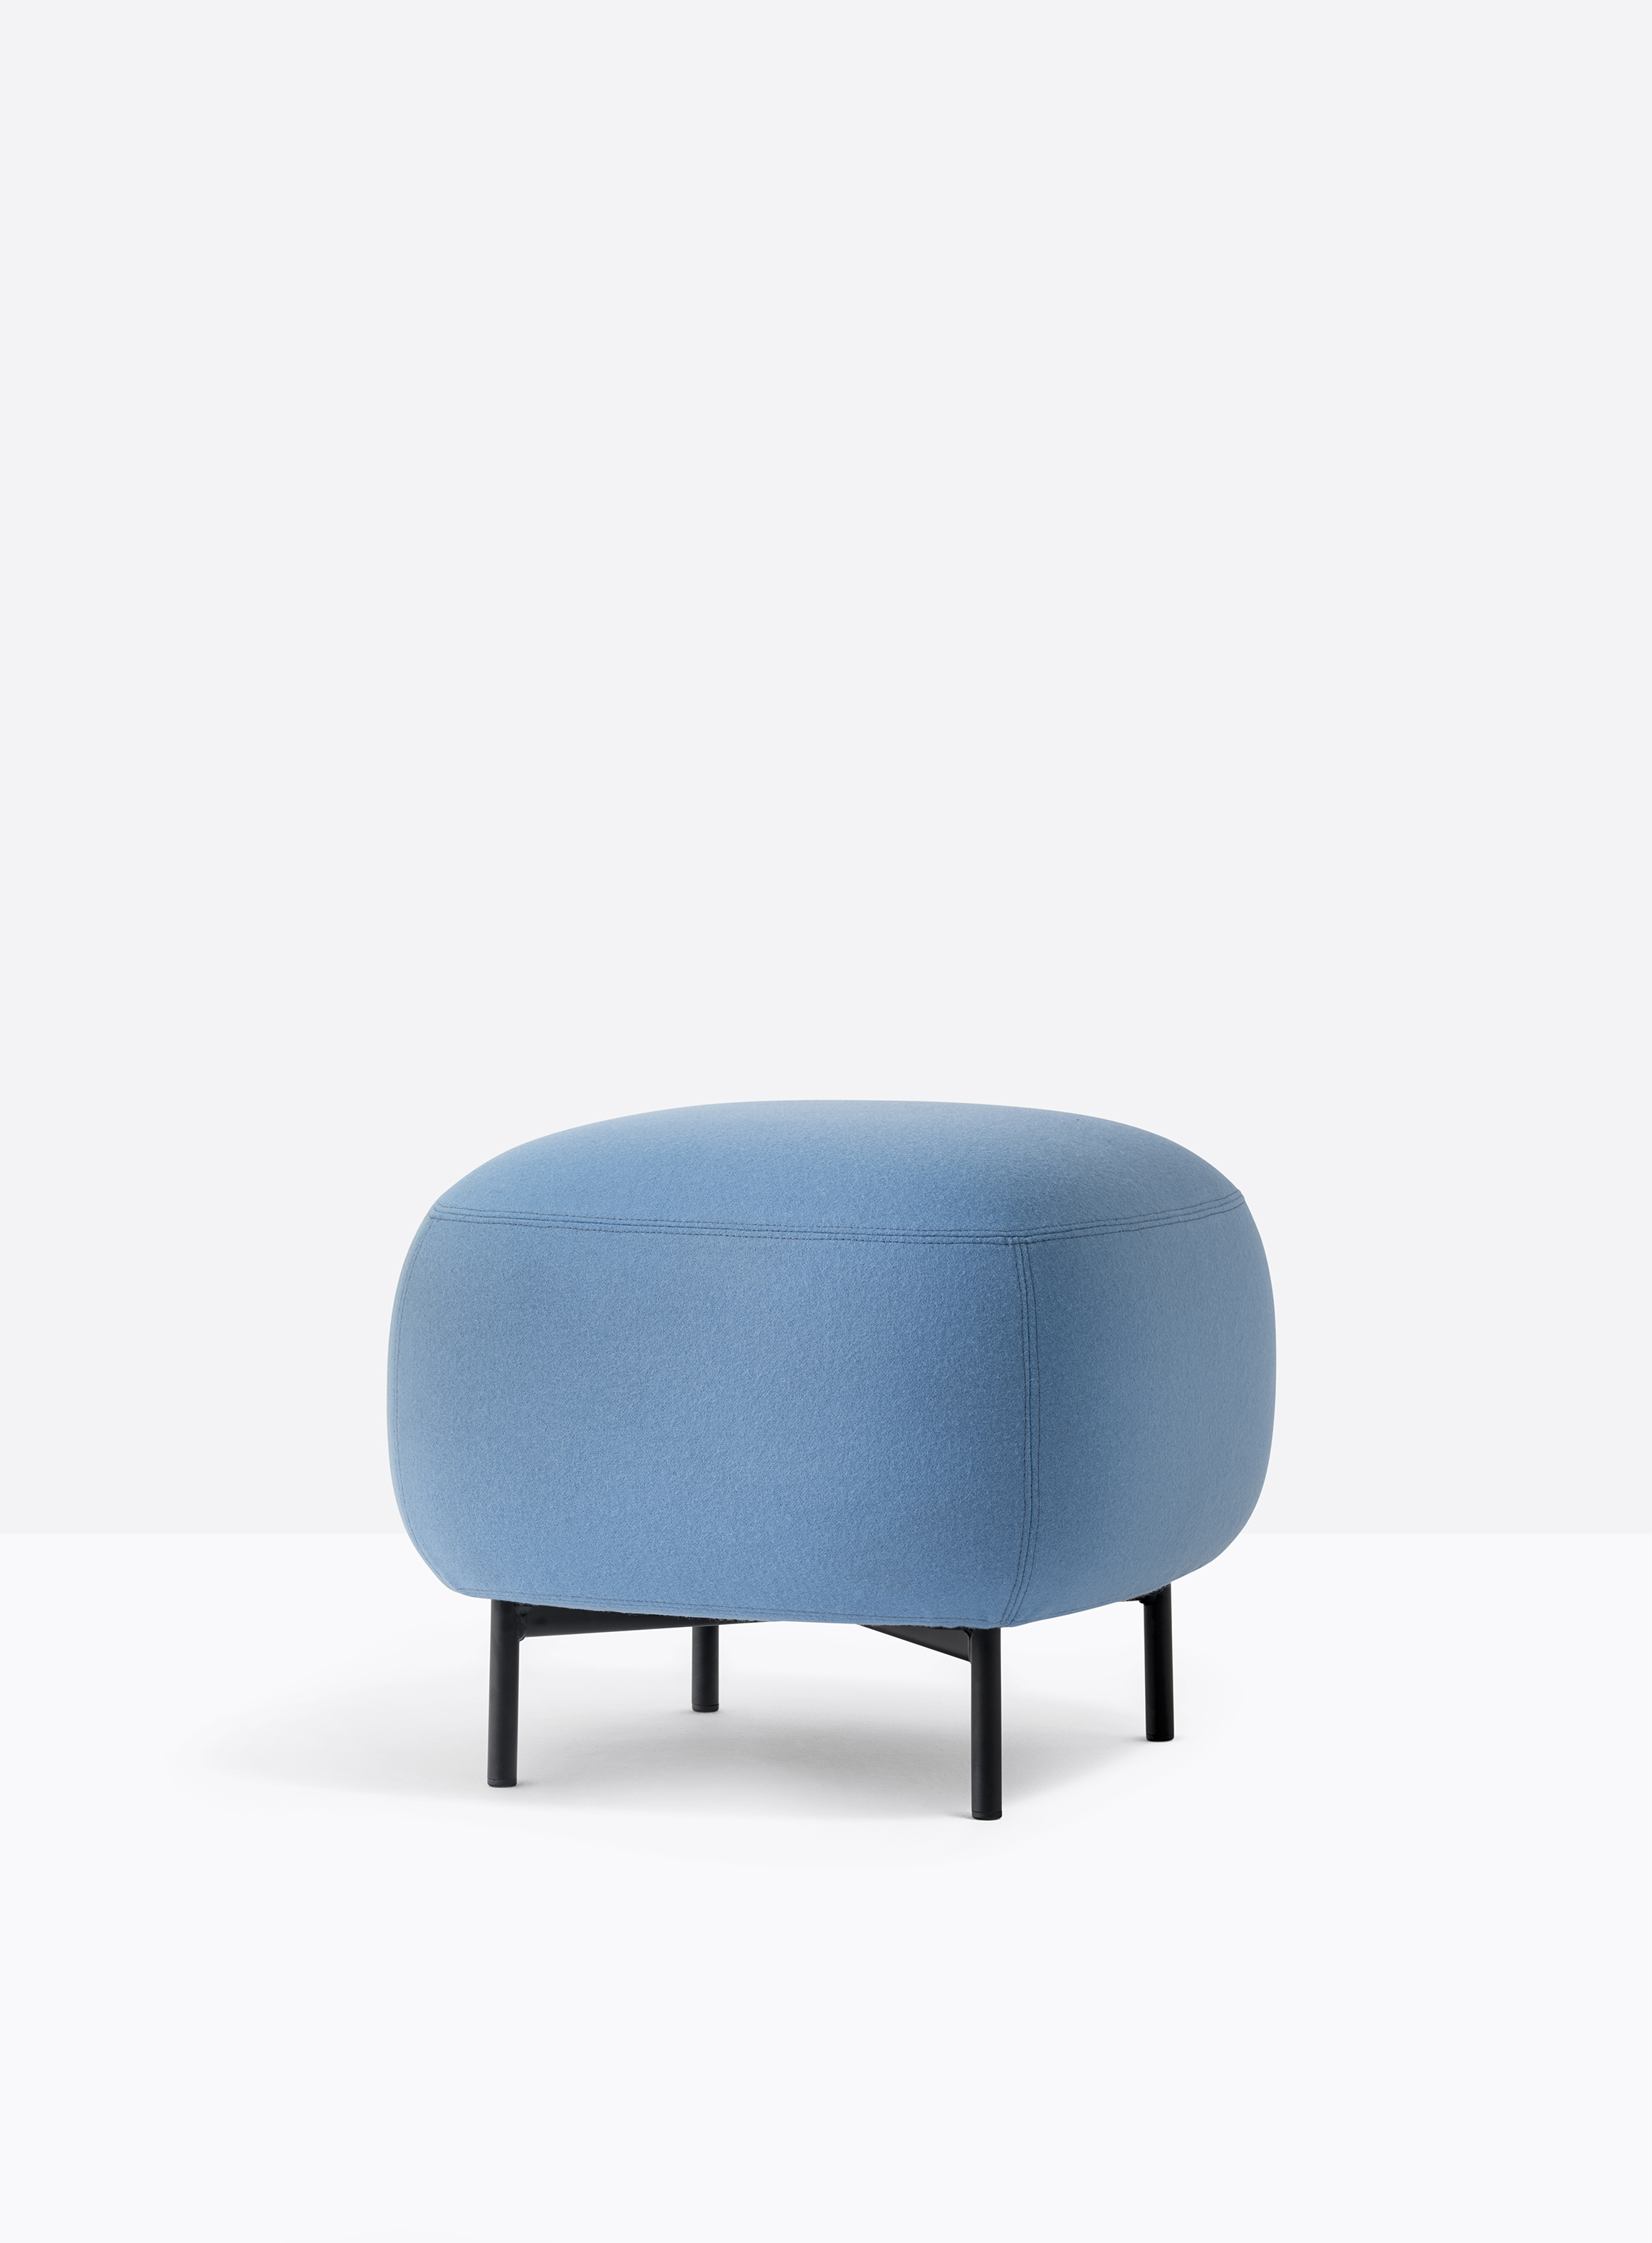 Buddy Pouf - <p>Soft lines and clean design feature Buddy collection. The rounded shape of the pouf with a generous and comfortable upholstery is supported by four thin and rigorous legs Ø20mm. These make the pouf extremely functional and visually lift the volume from the ground. Height 400 - 450 mm.</p> <p>A range of upholstery fabrics, materials and colours are available in a number of combinations. Prices may vary. Please enquire for full details.</p>    Matter of Stuff